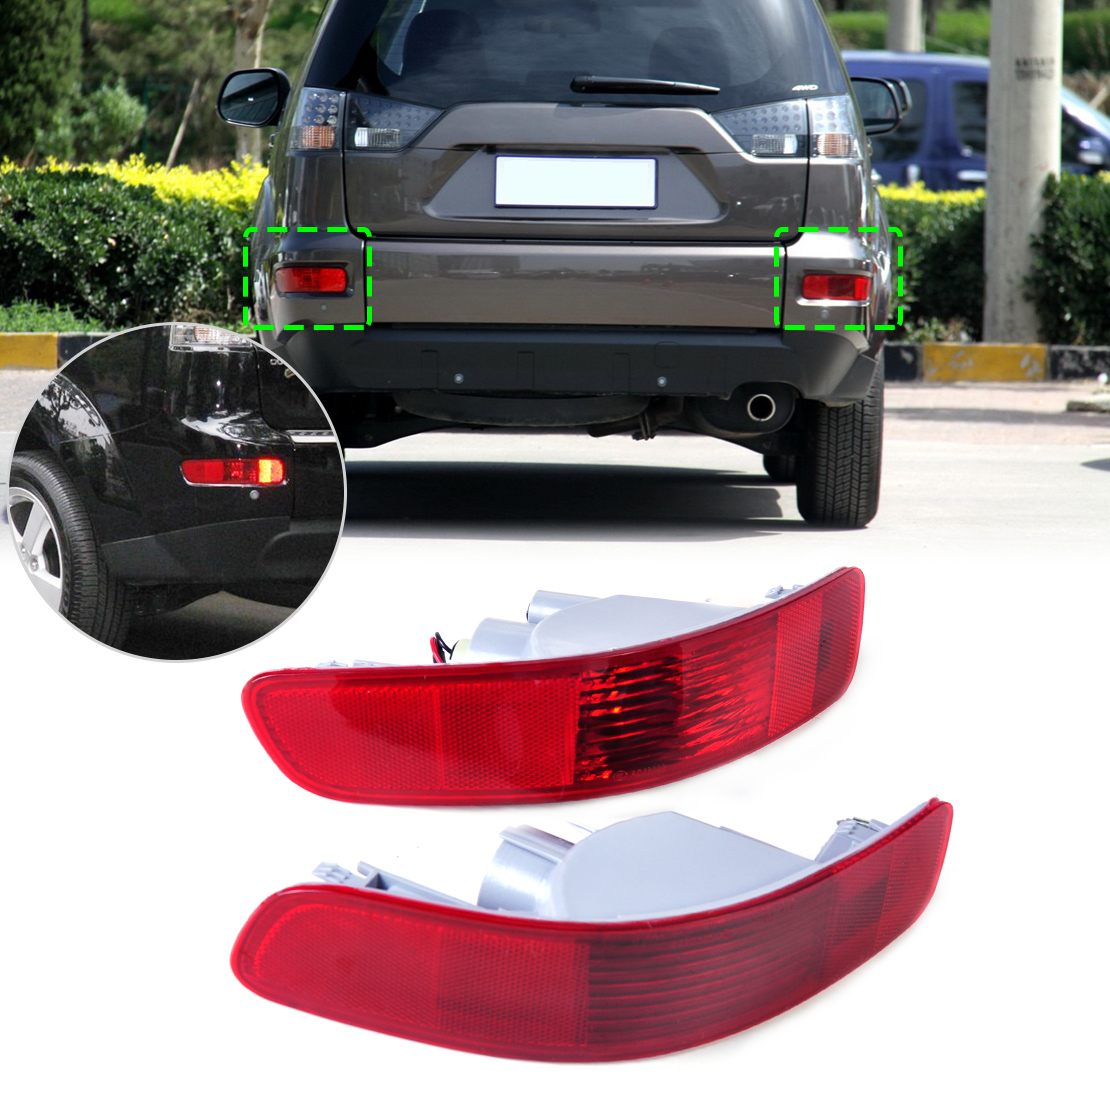 beler 2x Rear Right Left Tail Fog Light Lamp Reflector 8352A005 8337A015 for Mitsubishi Outlander 2007